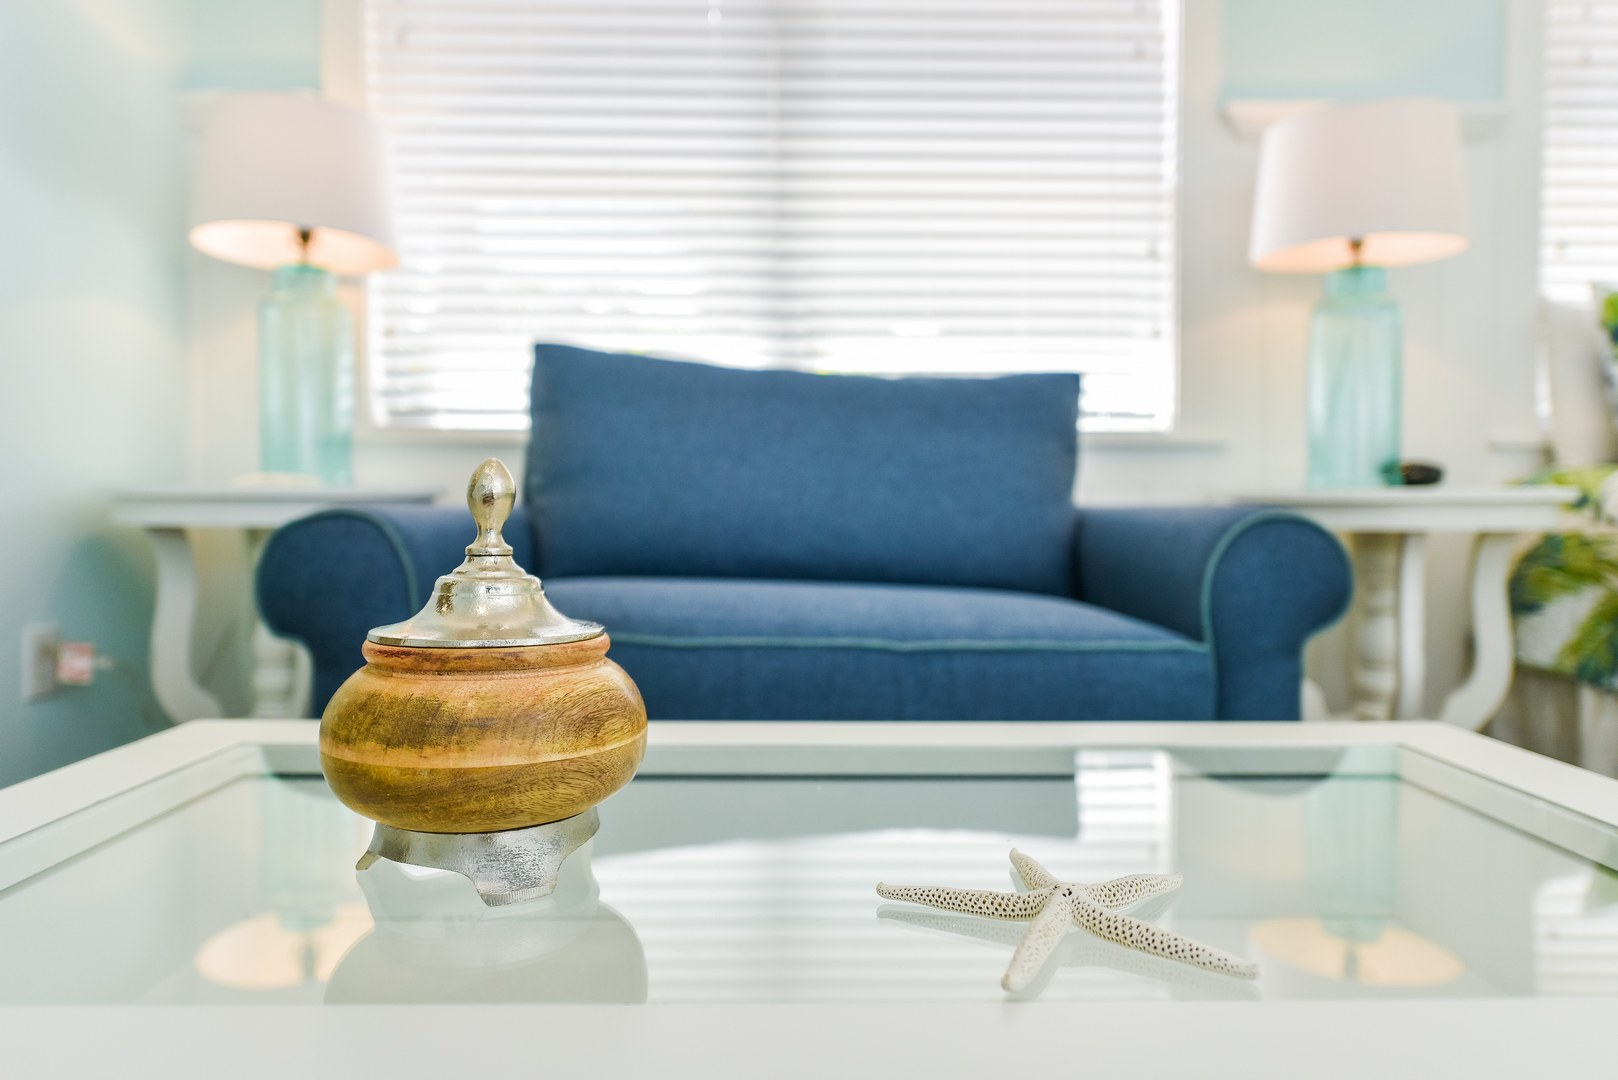 Very Nice Decor and Furnishings for added Comfort